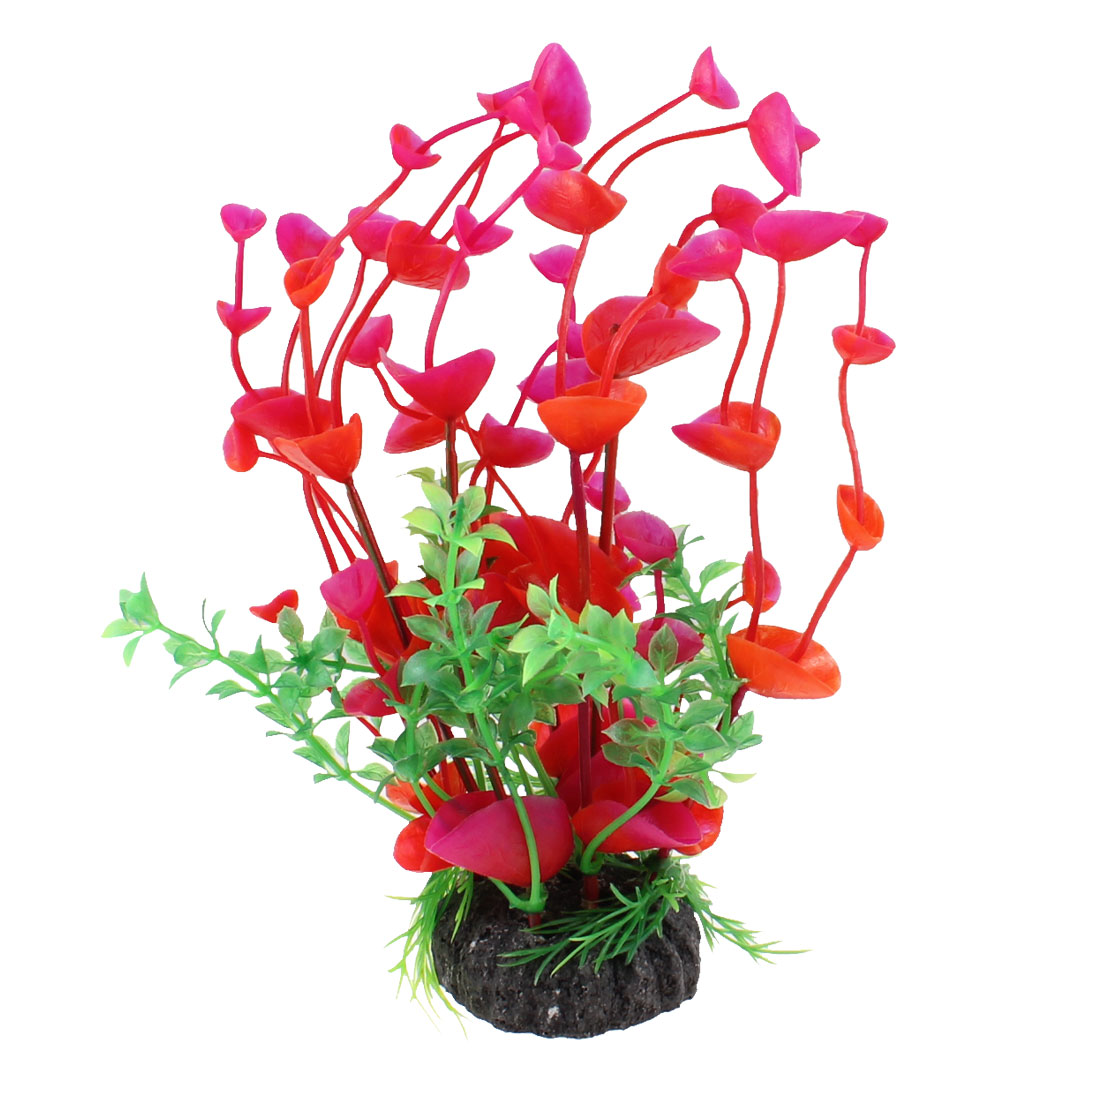 Aquarium Fish Tank Landscaping Ornament Emulational Red Green Grass Plant Dcoration